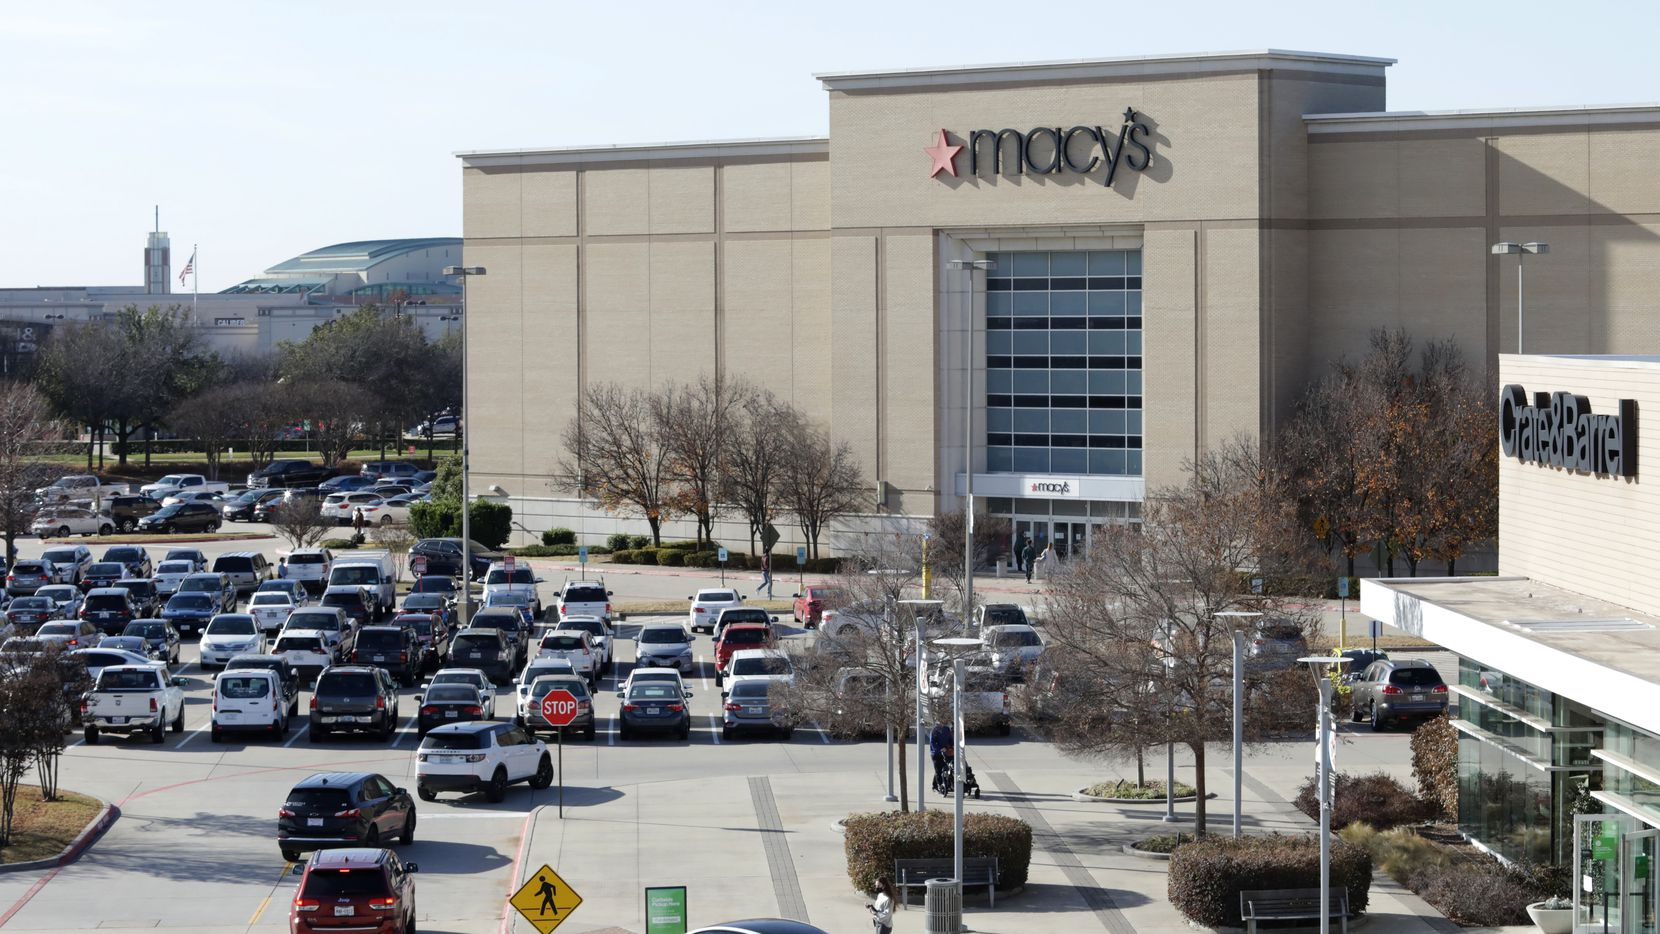 The Shops at Willow Bend is an attractive mall that's in good shape physically, but it has lost tenants over the years and customer traffic was weak even before the pandemic.